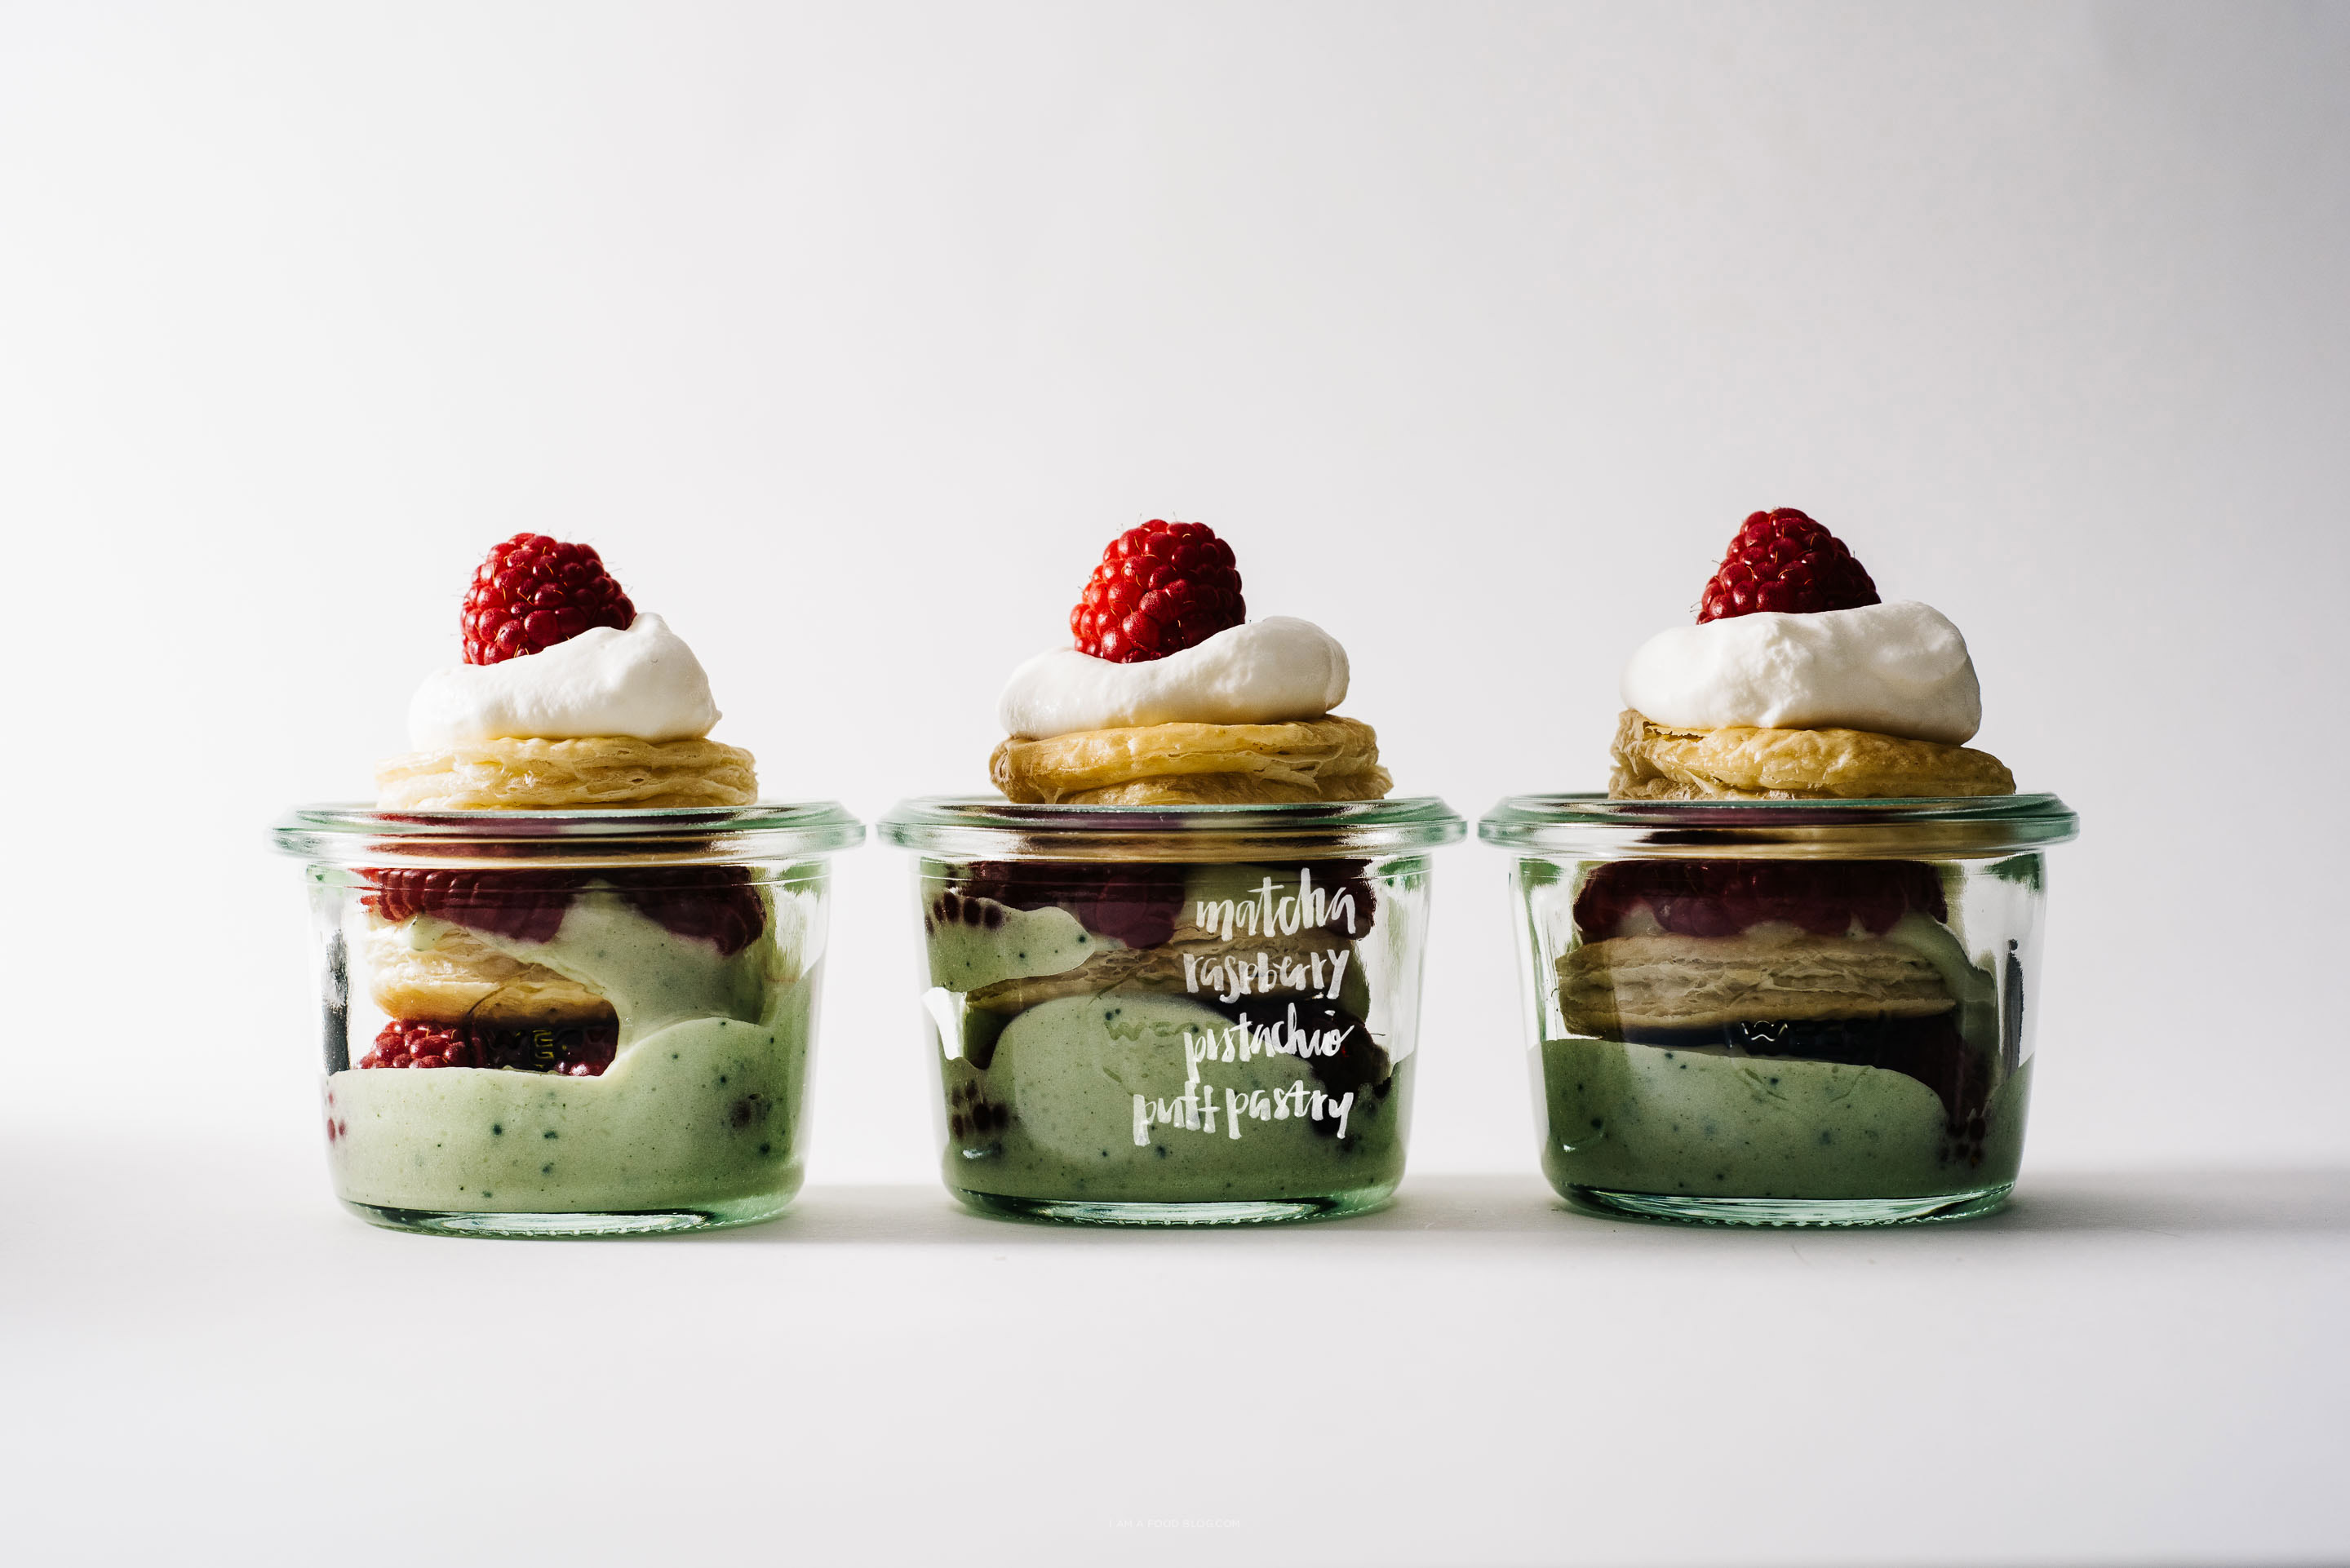 mini pistachio matcha raspberry puff pastry mille feuille jars - www.iamafoodblog.com